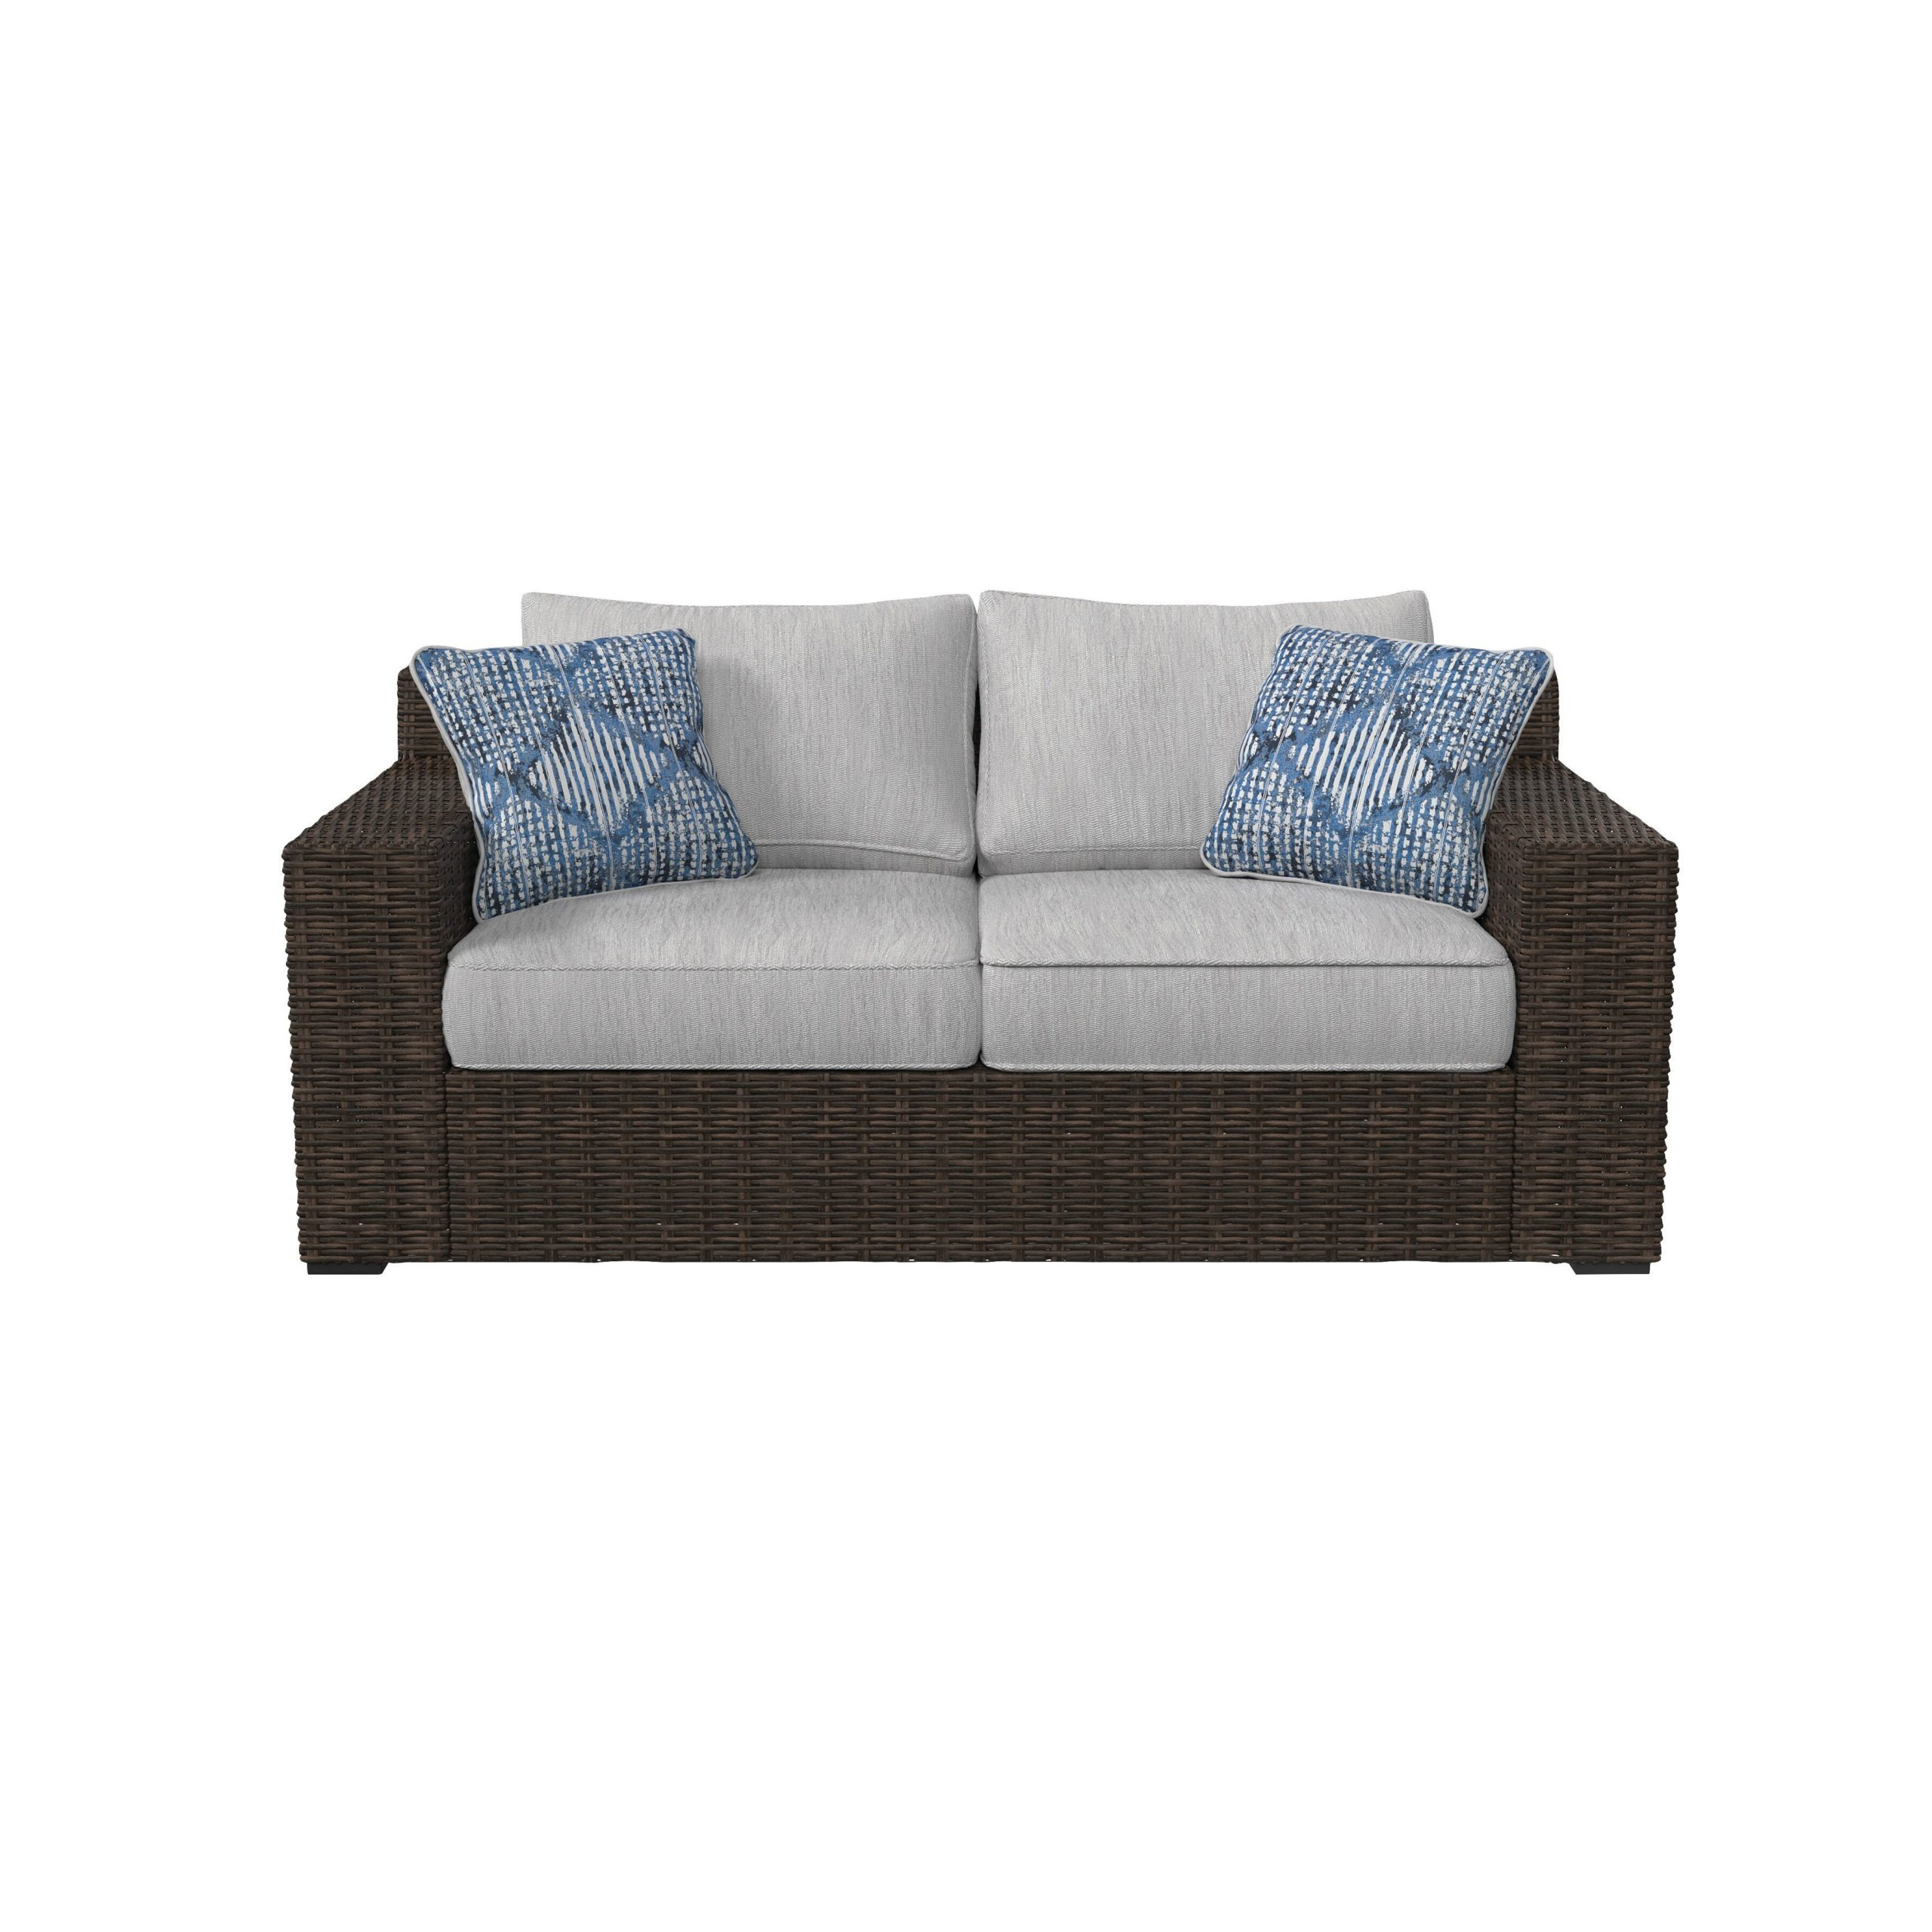 Oreland Loveseat With Cushions Throughout Trendy Linwood Loveseats With Cushions (View 7 of 25)